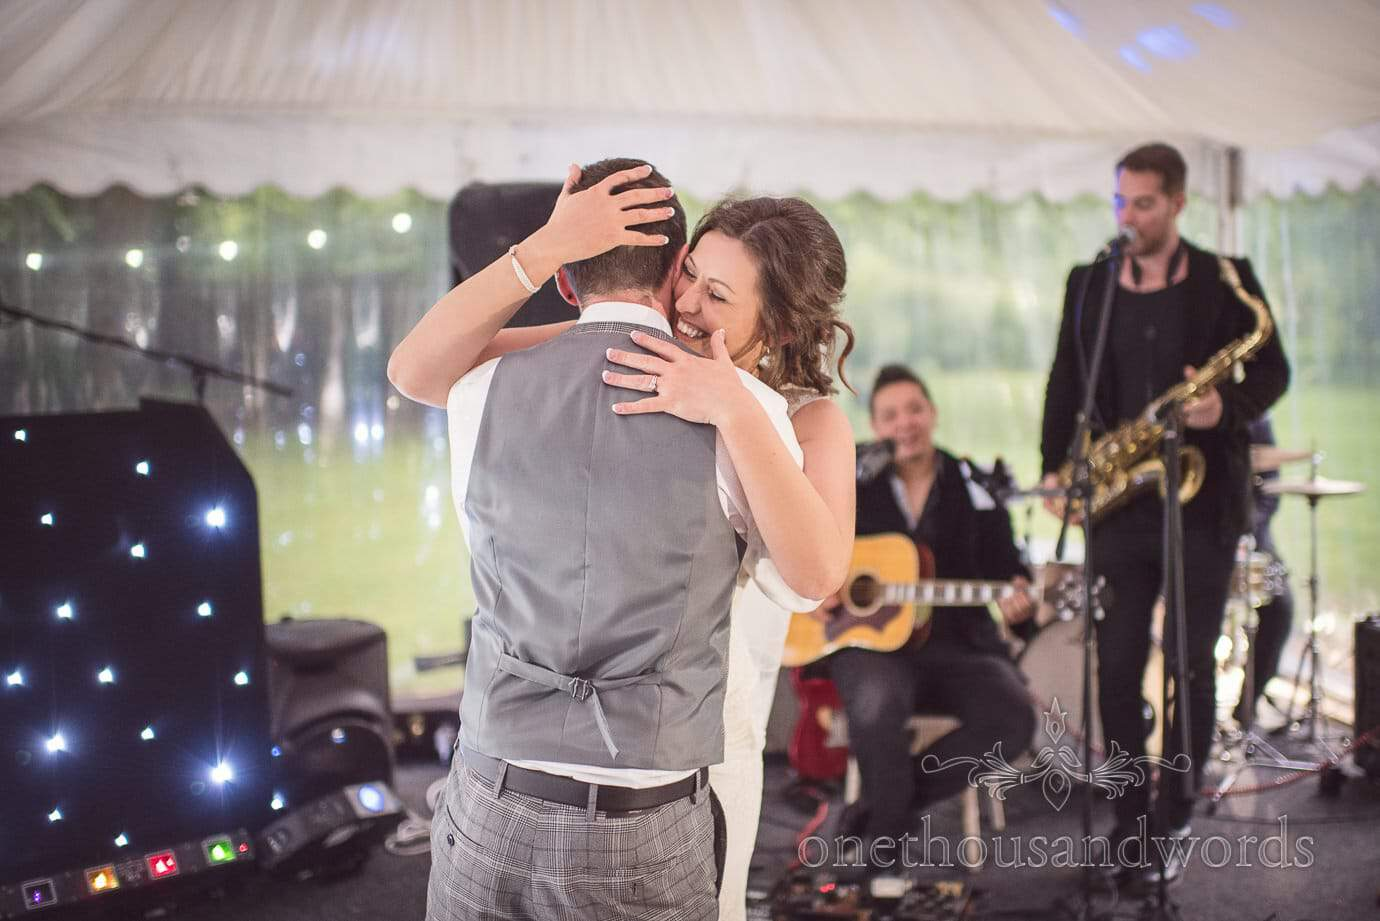 Bride and groom first dance to wedding band at The Old Vicarage Wedding venue